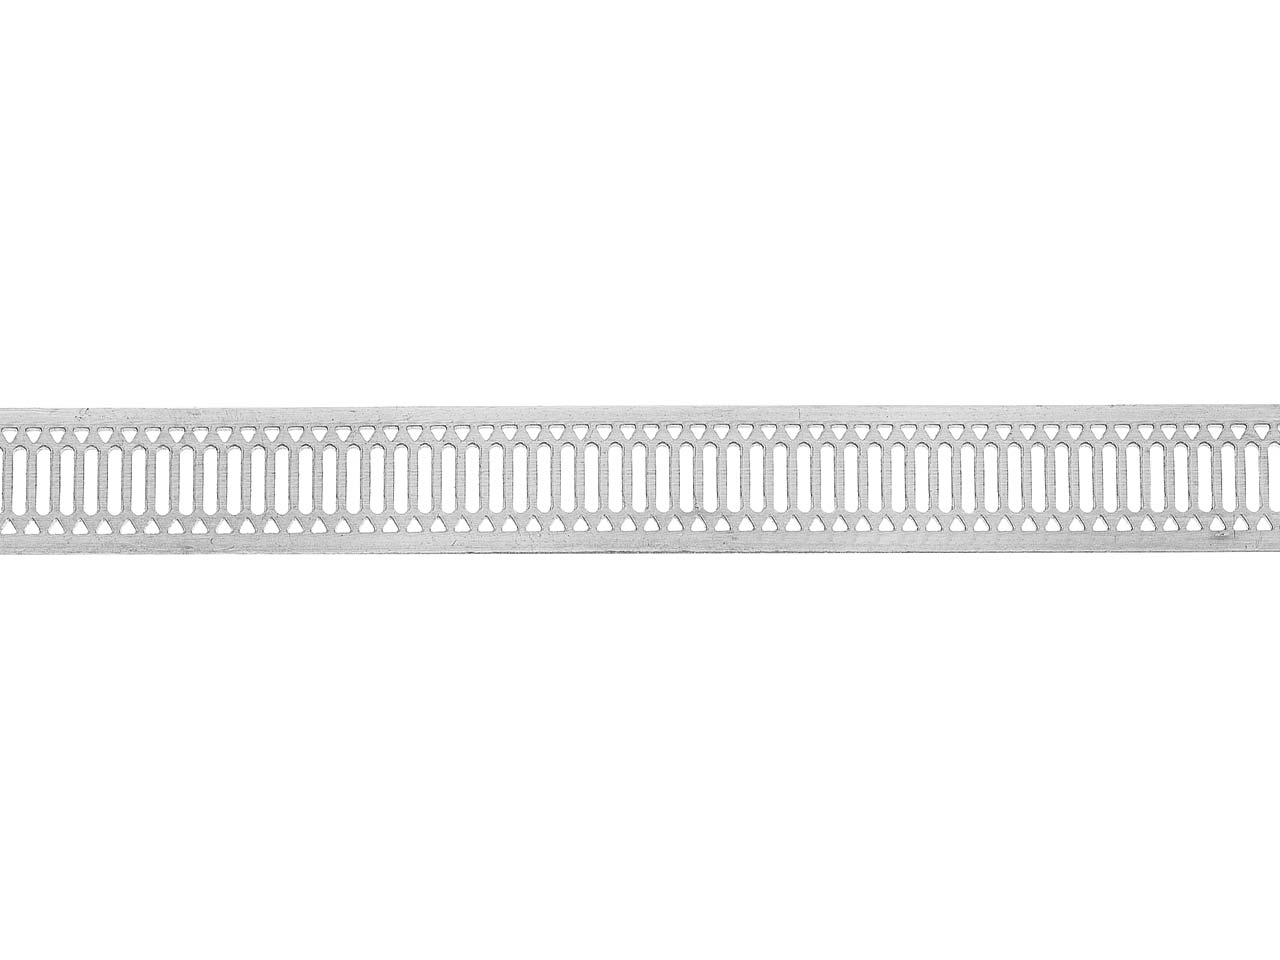 Sterling Silver Gallery Strip Ref  10gs 8.4mm Wide, 44.0gms/mtr